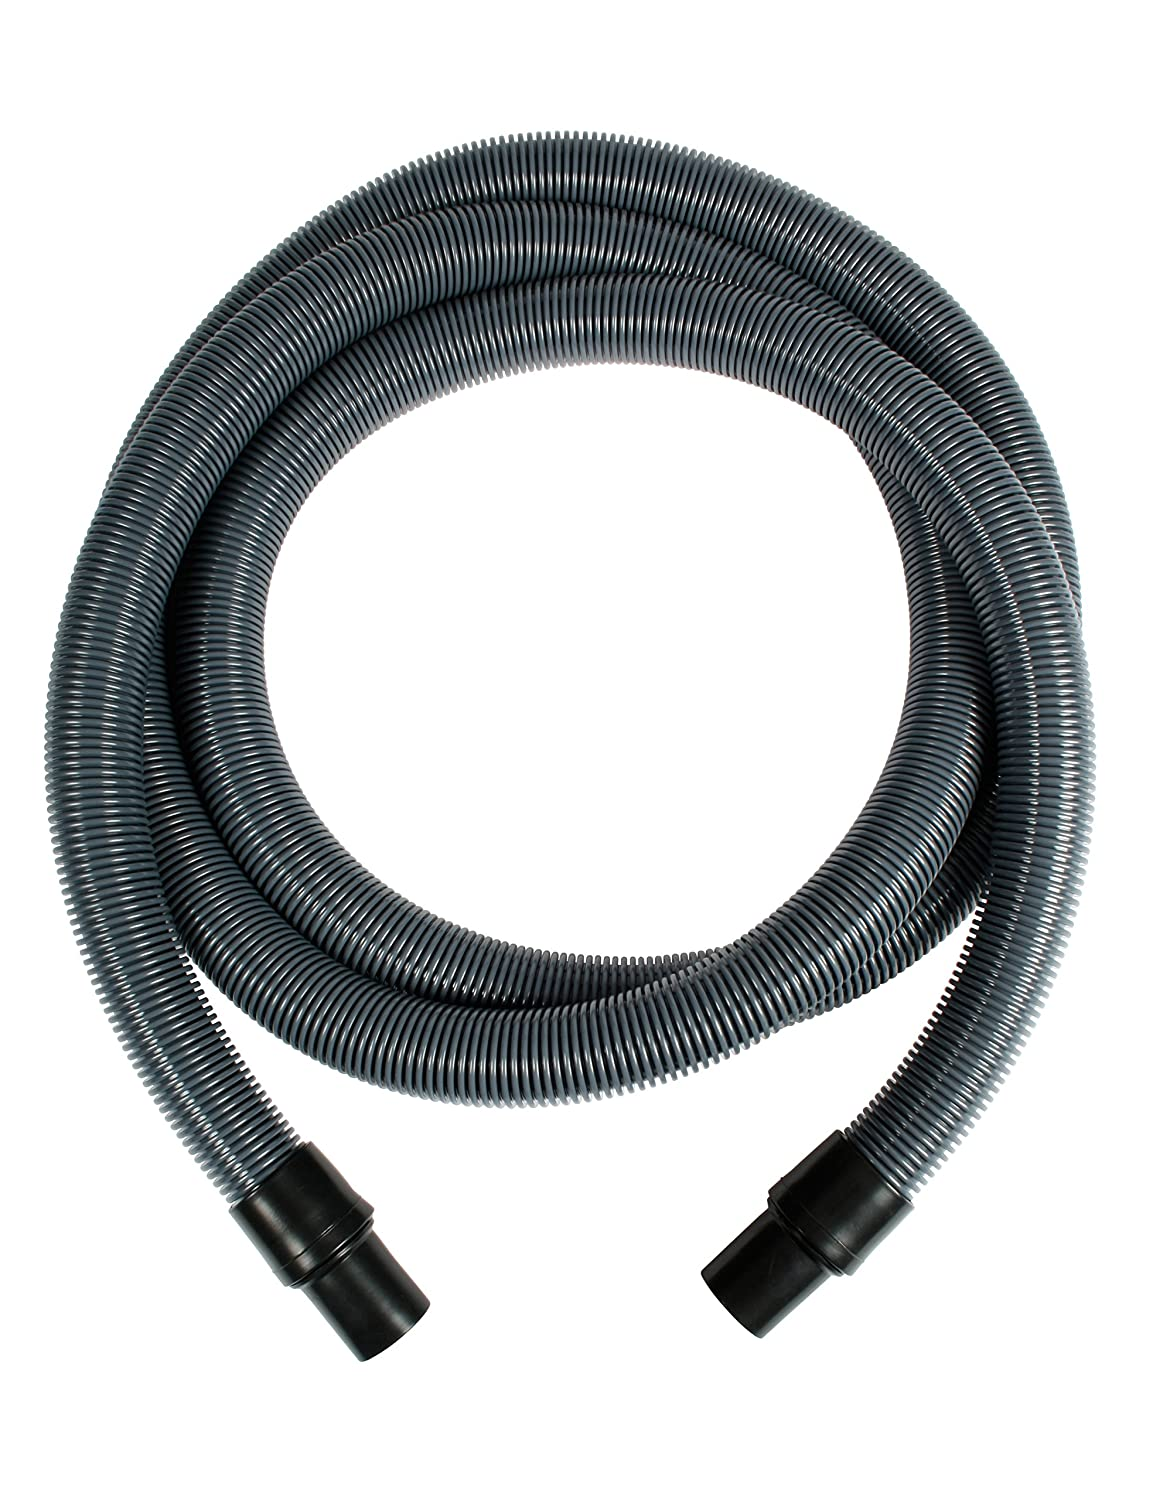 Cen-Tec Systems 91376 Varioflex Crushproof Vacuum Hose with 1.5-Inch Cuffs, 10-Feet, Silver